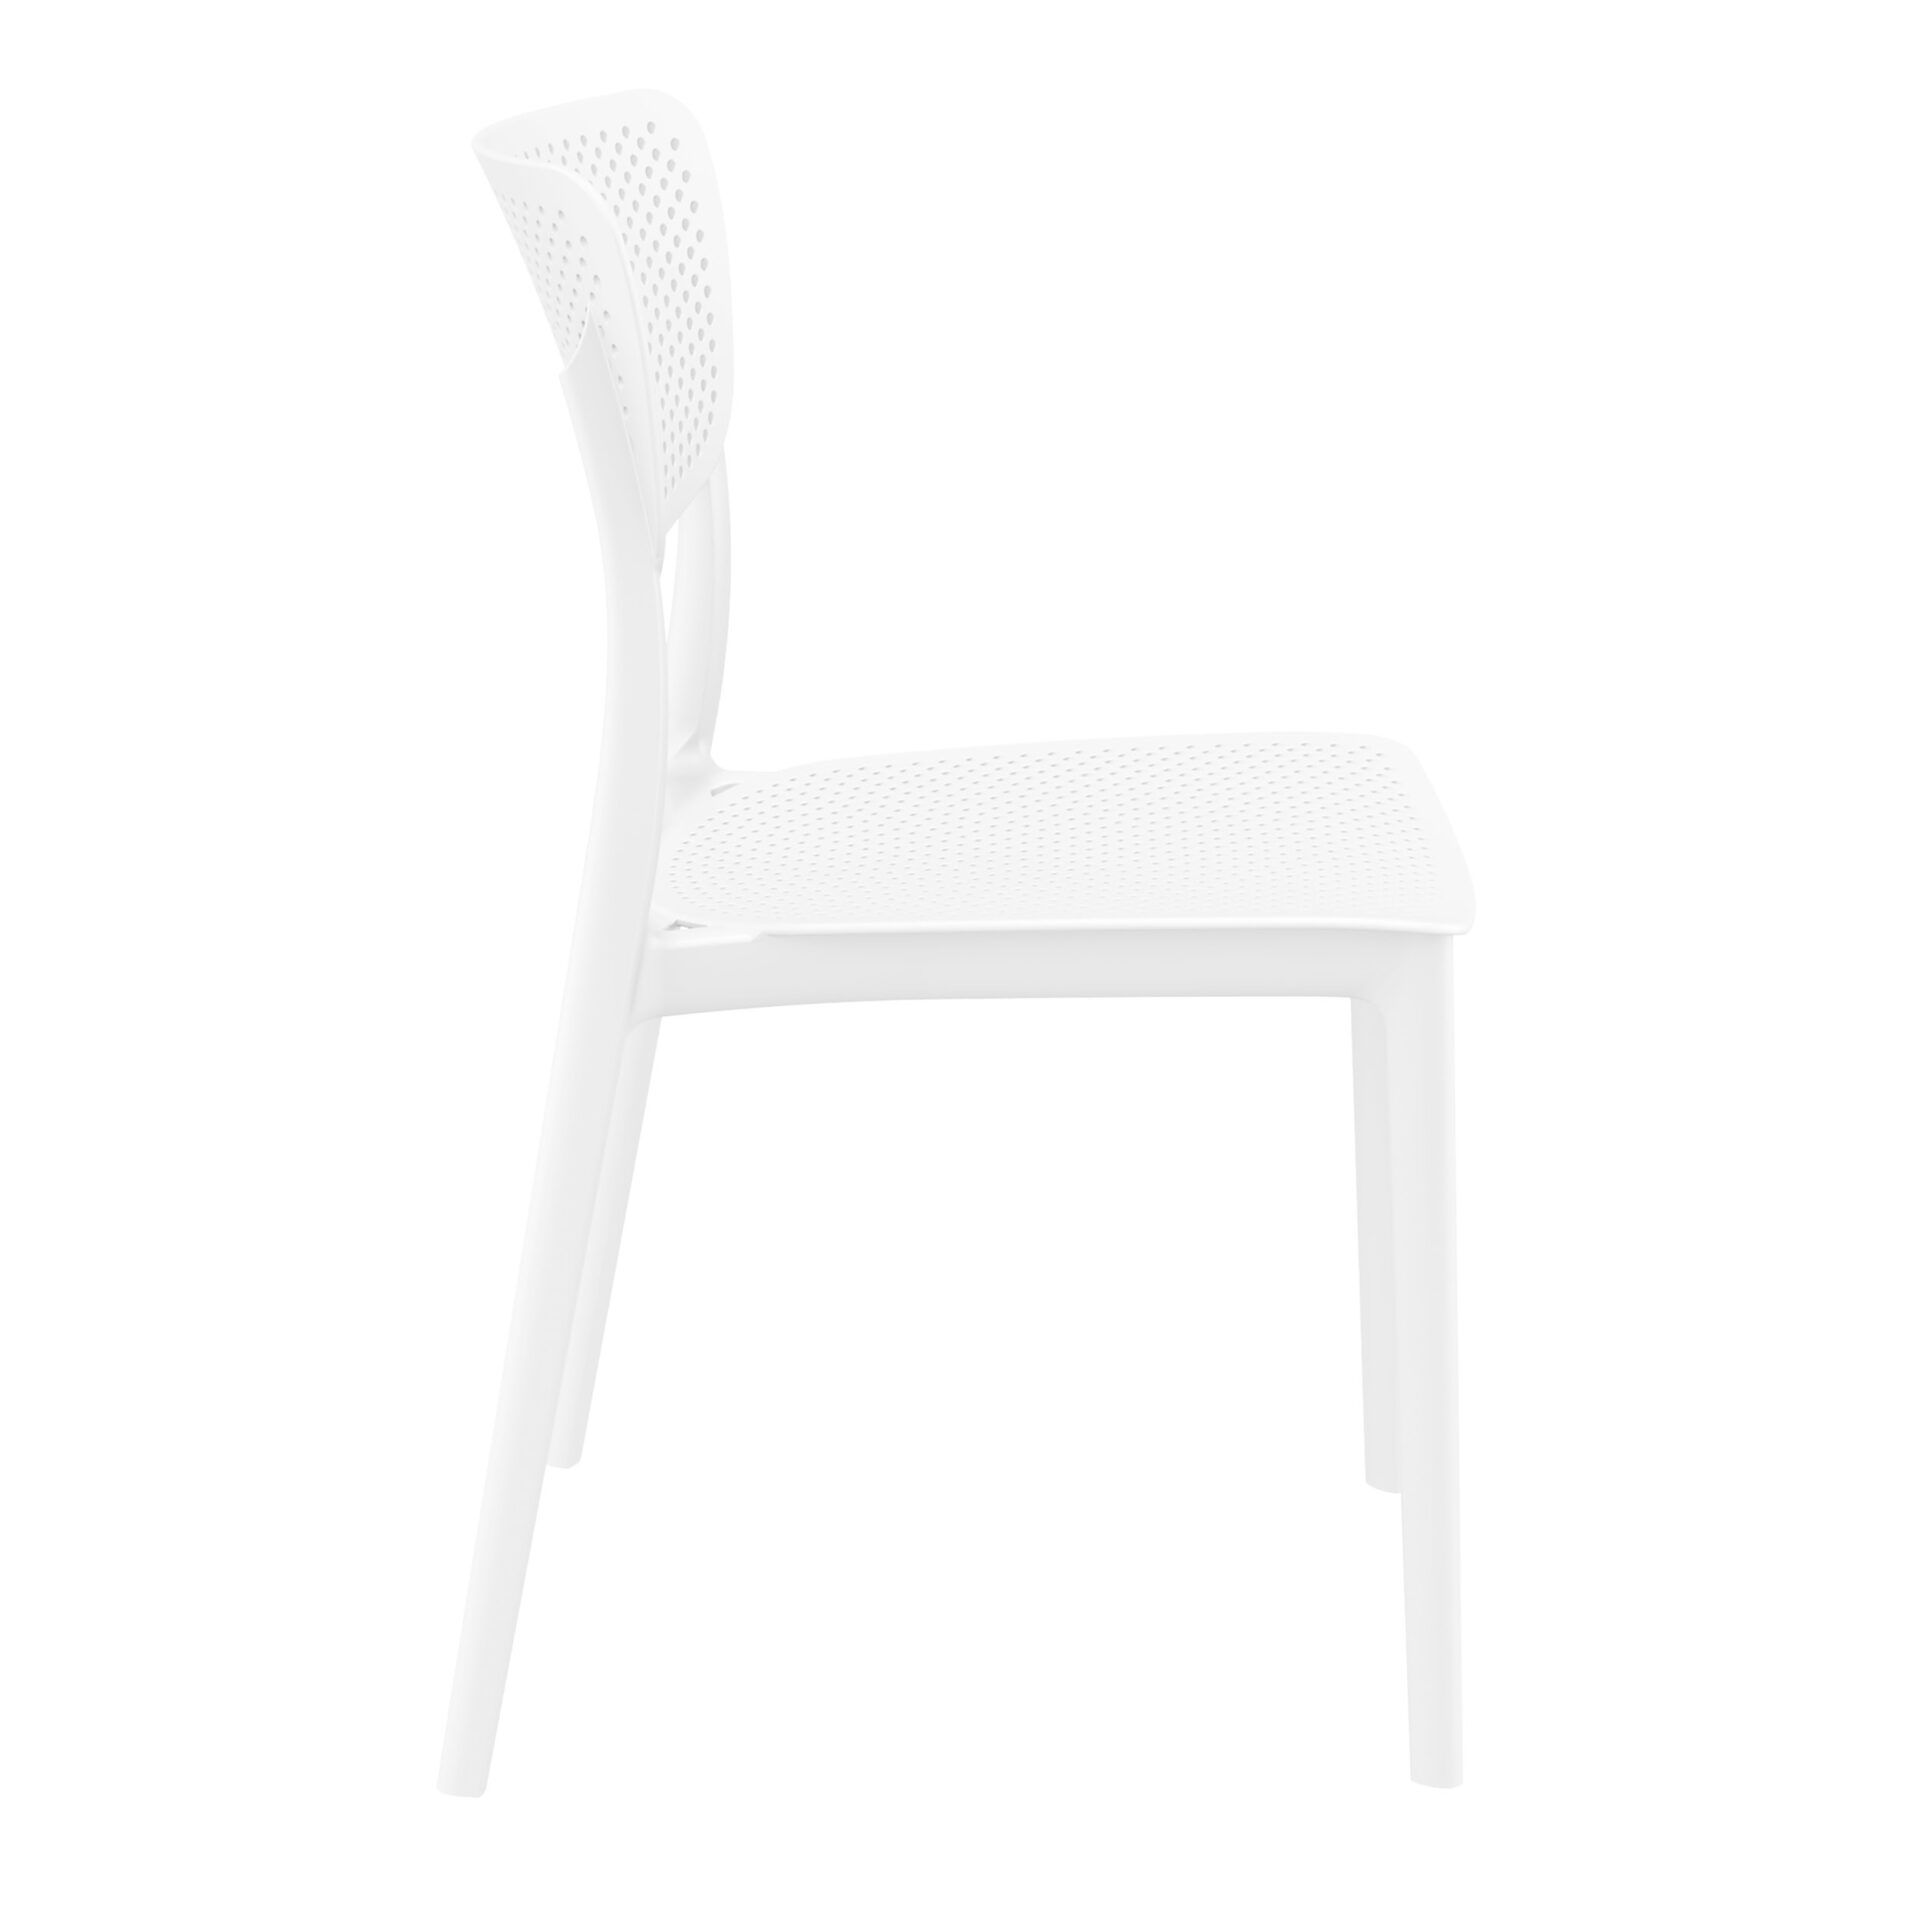 polypropylene hospitality seating lucy chair white side